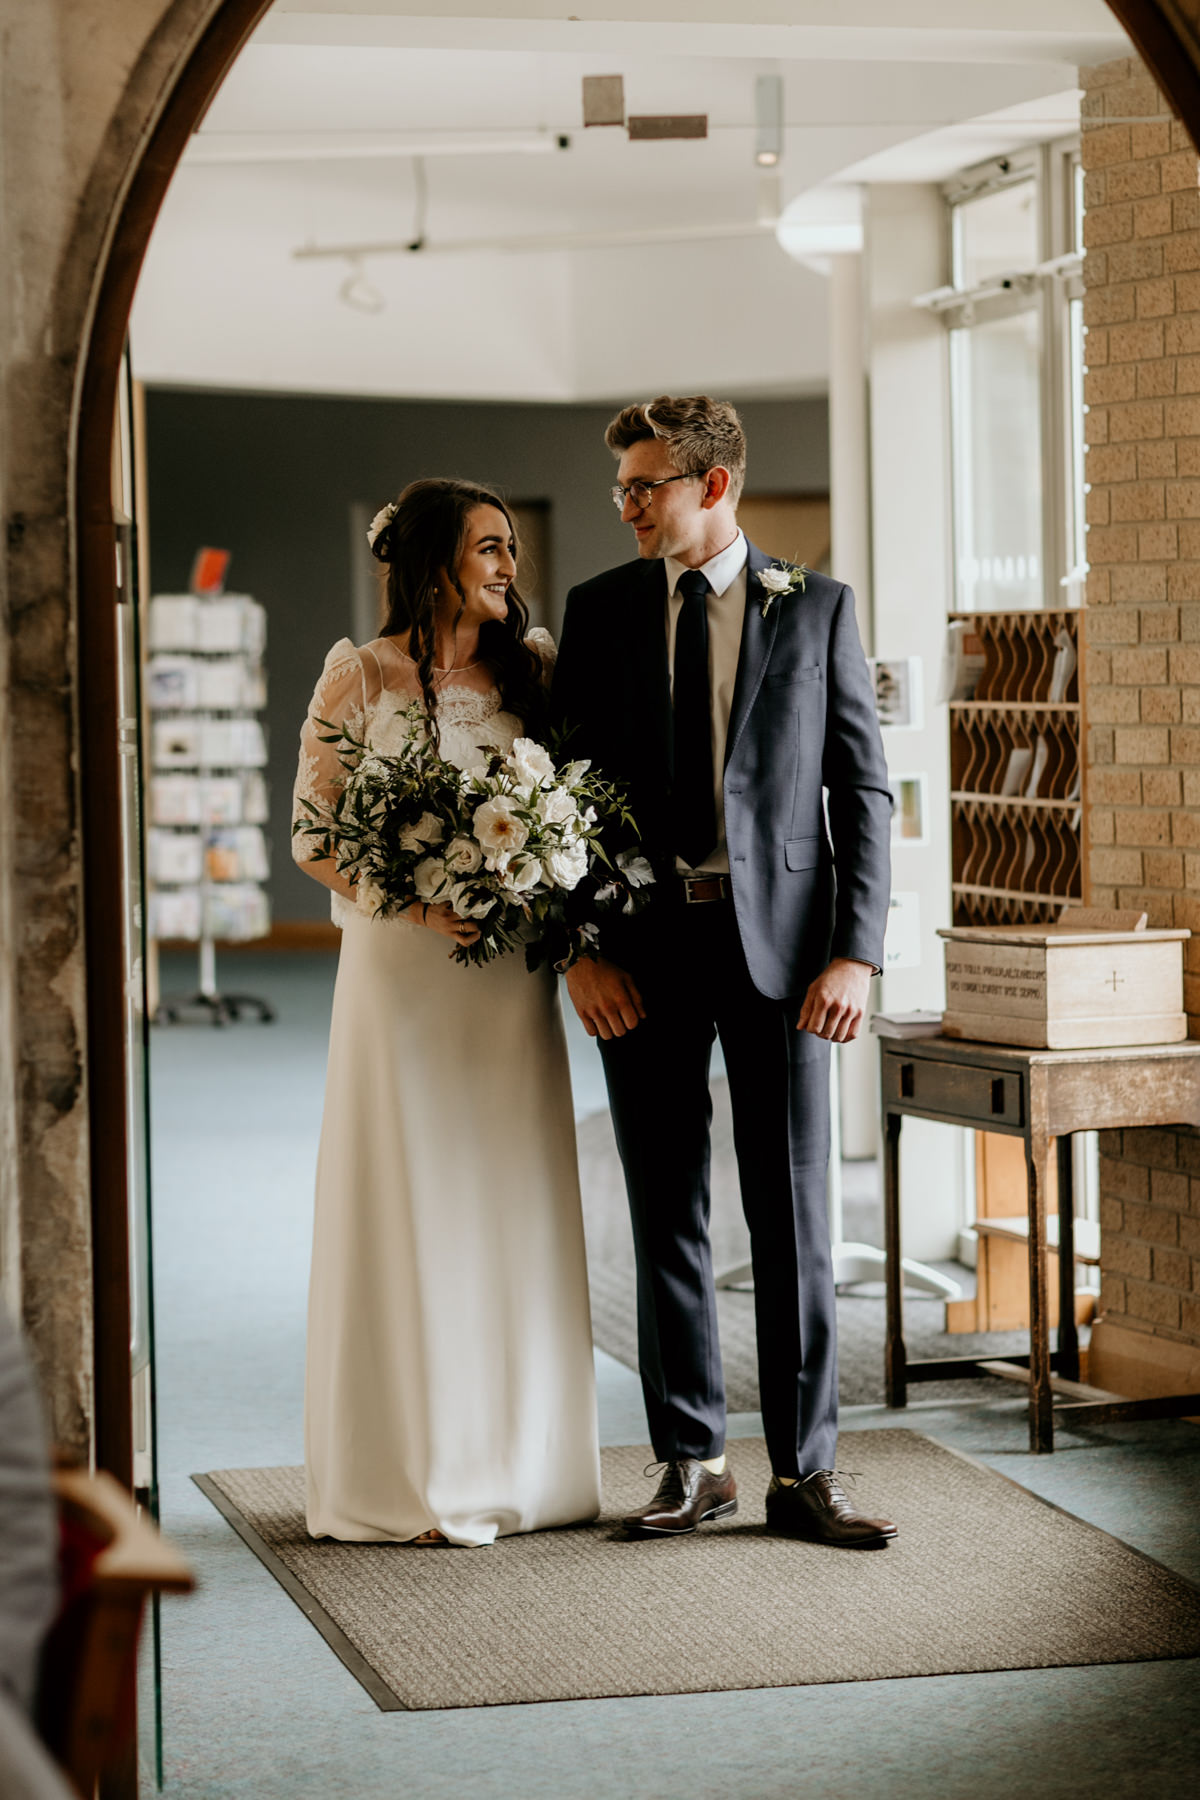 bride and brother walking down the aisle for her church wedding ceremony